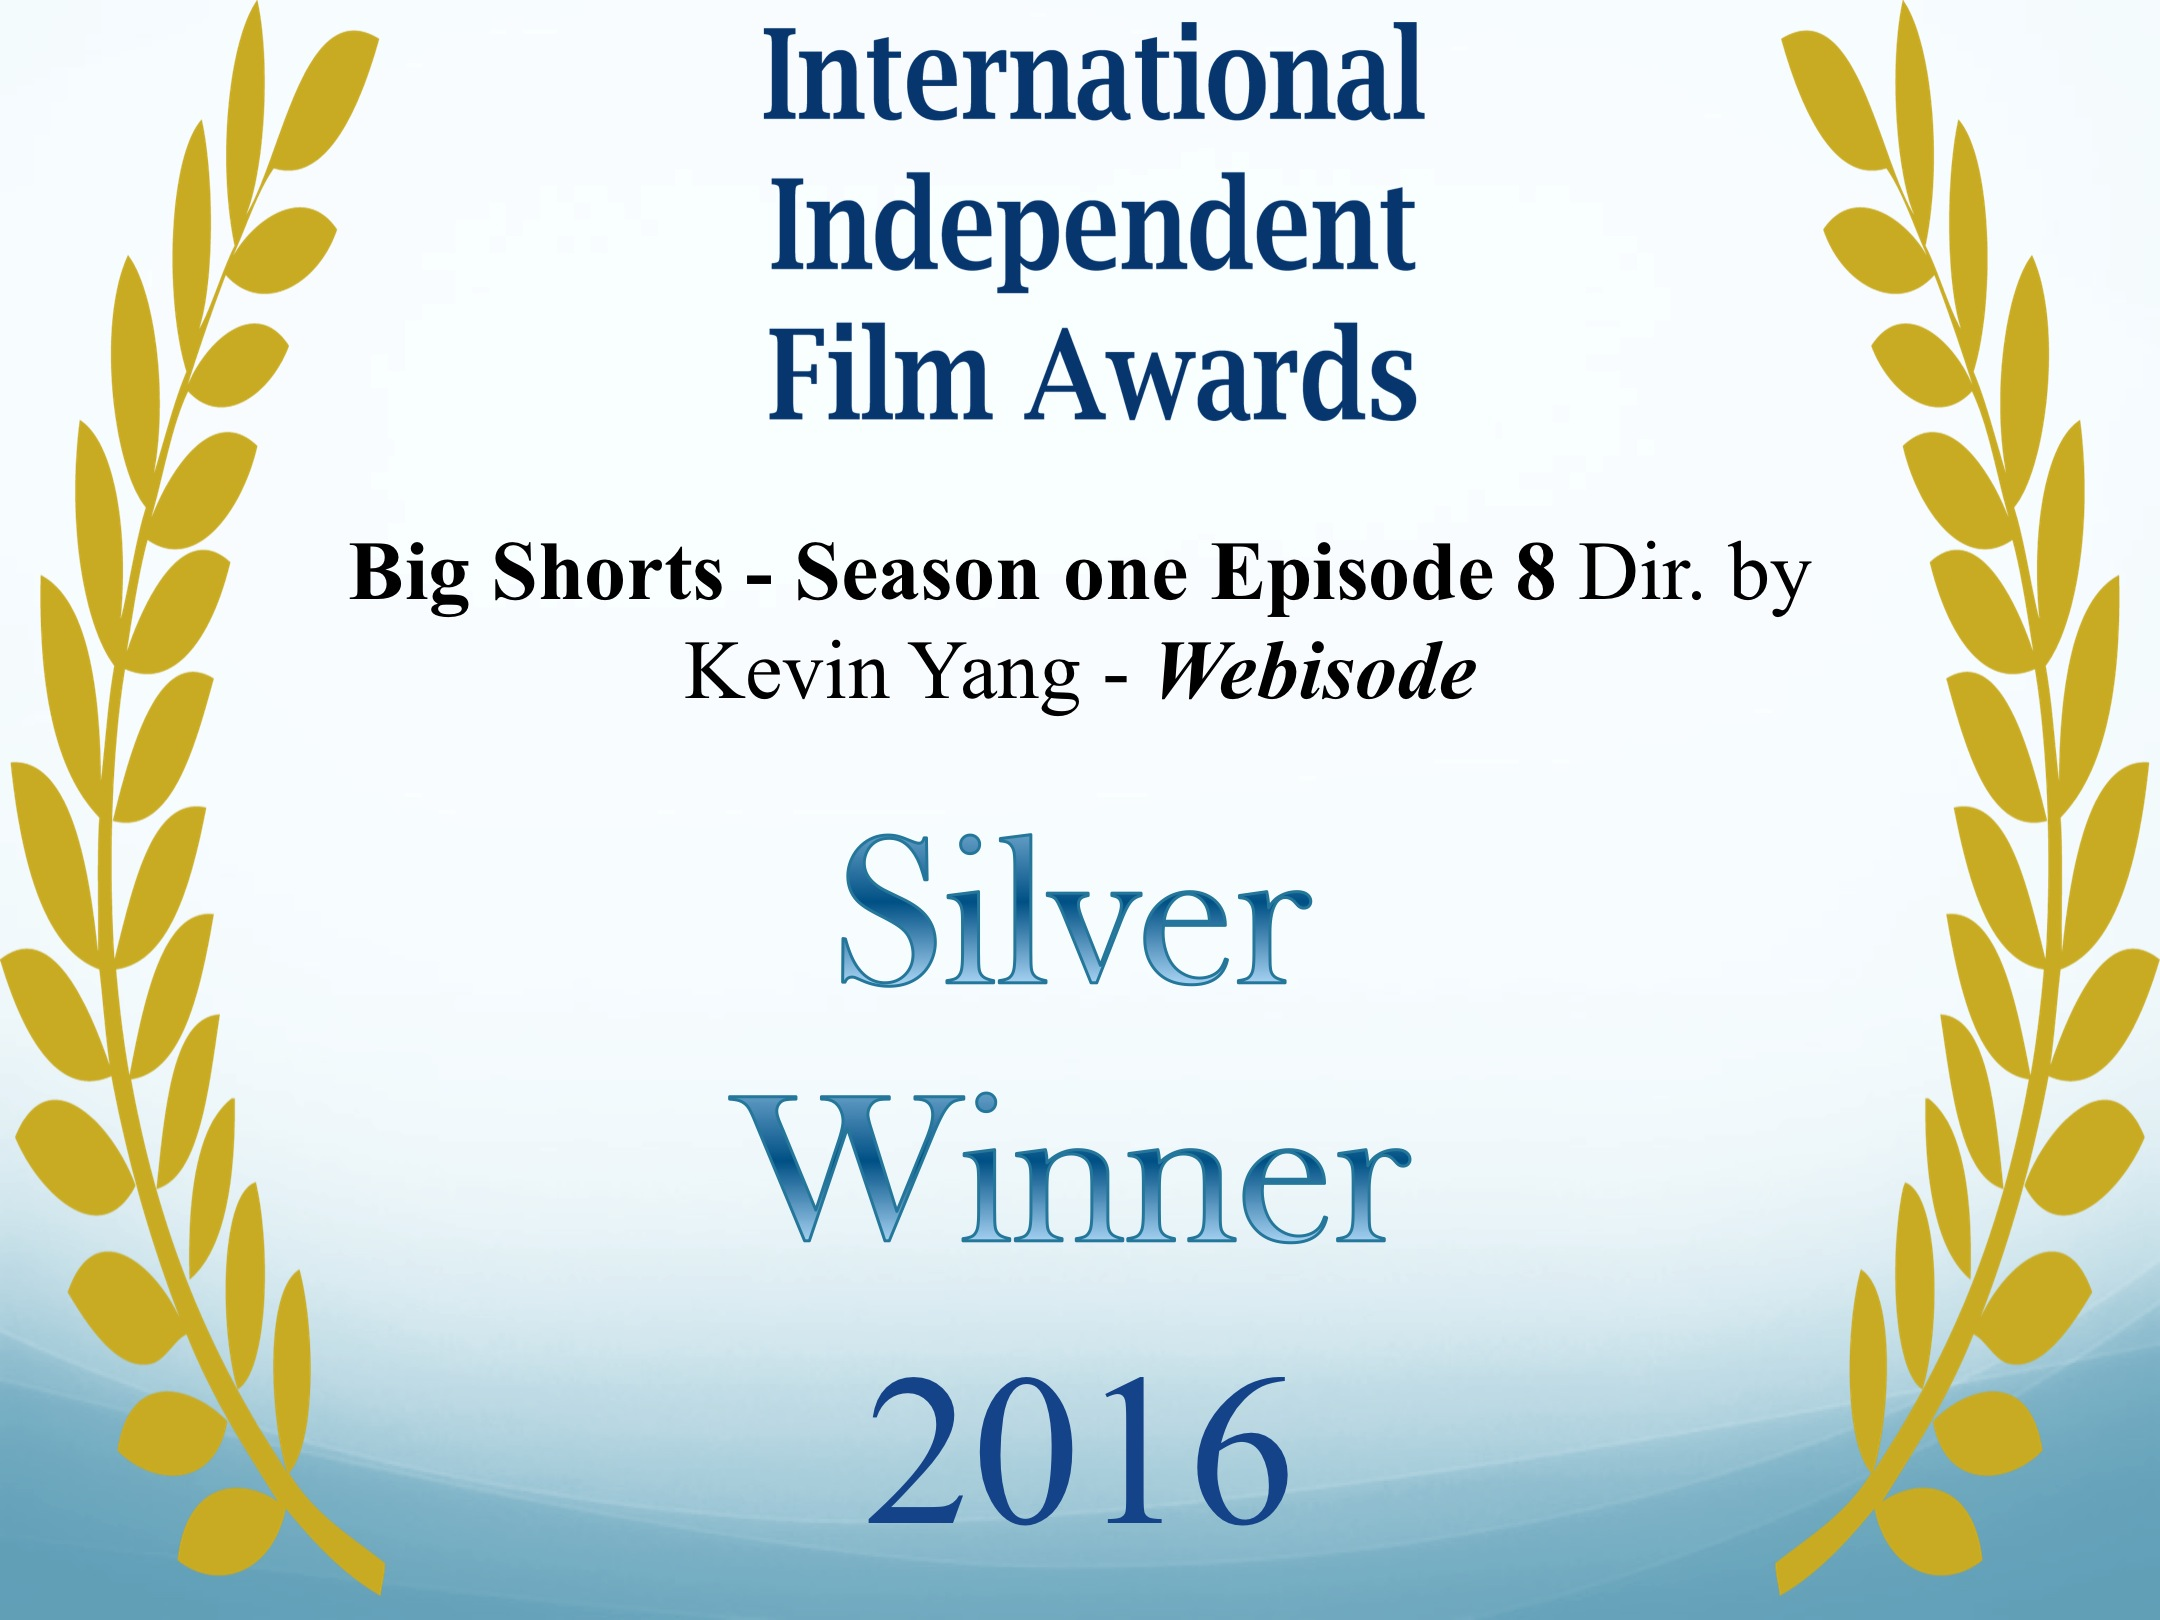 big-shorts-season-one-episode-8-dir-by-kevin-yang-webisode